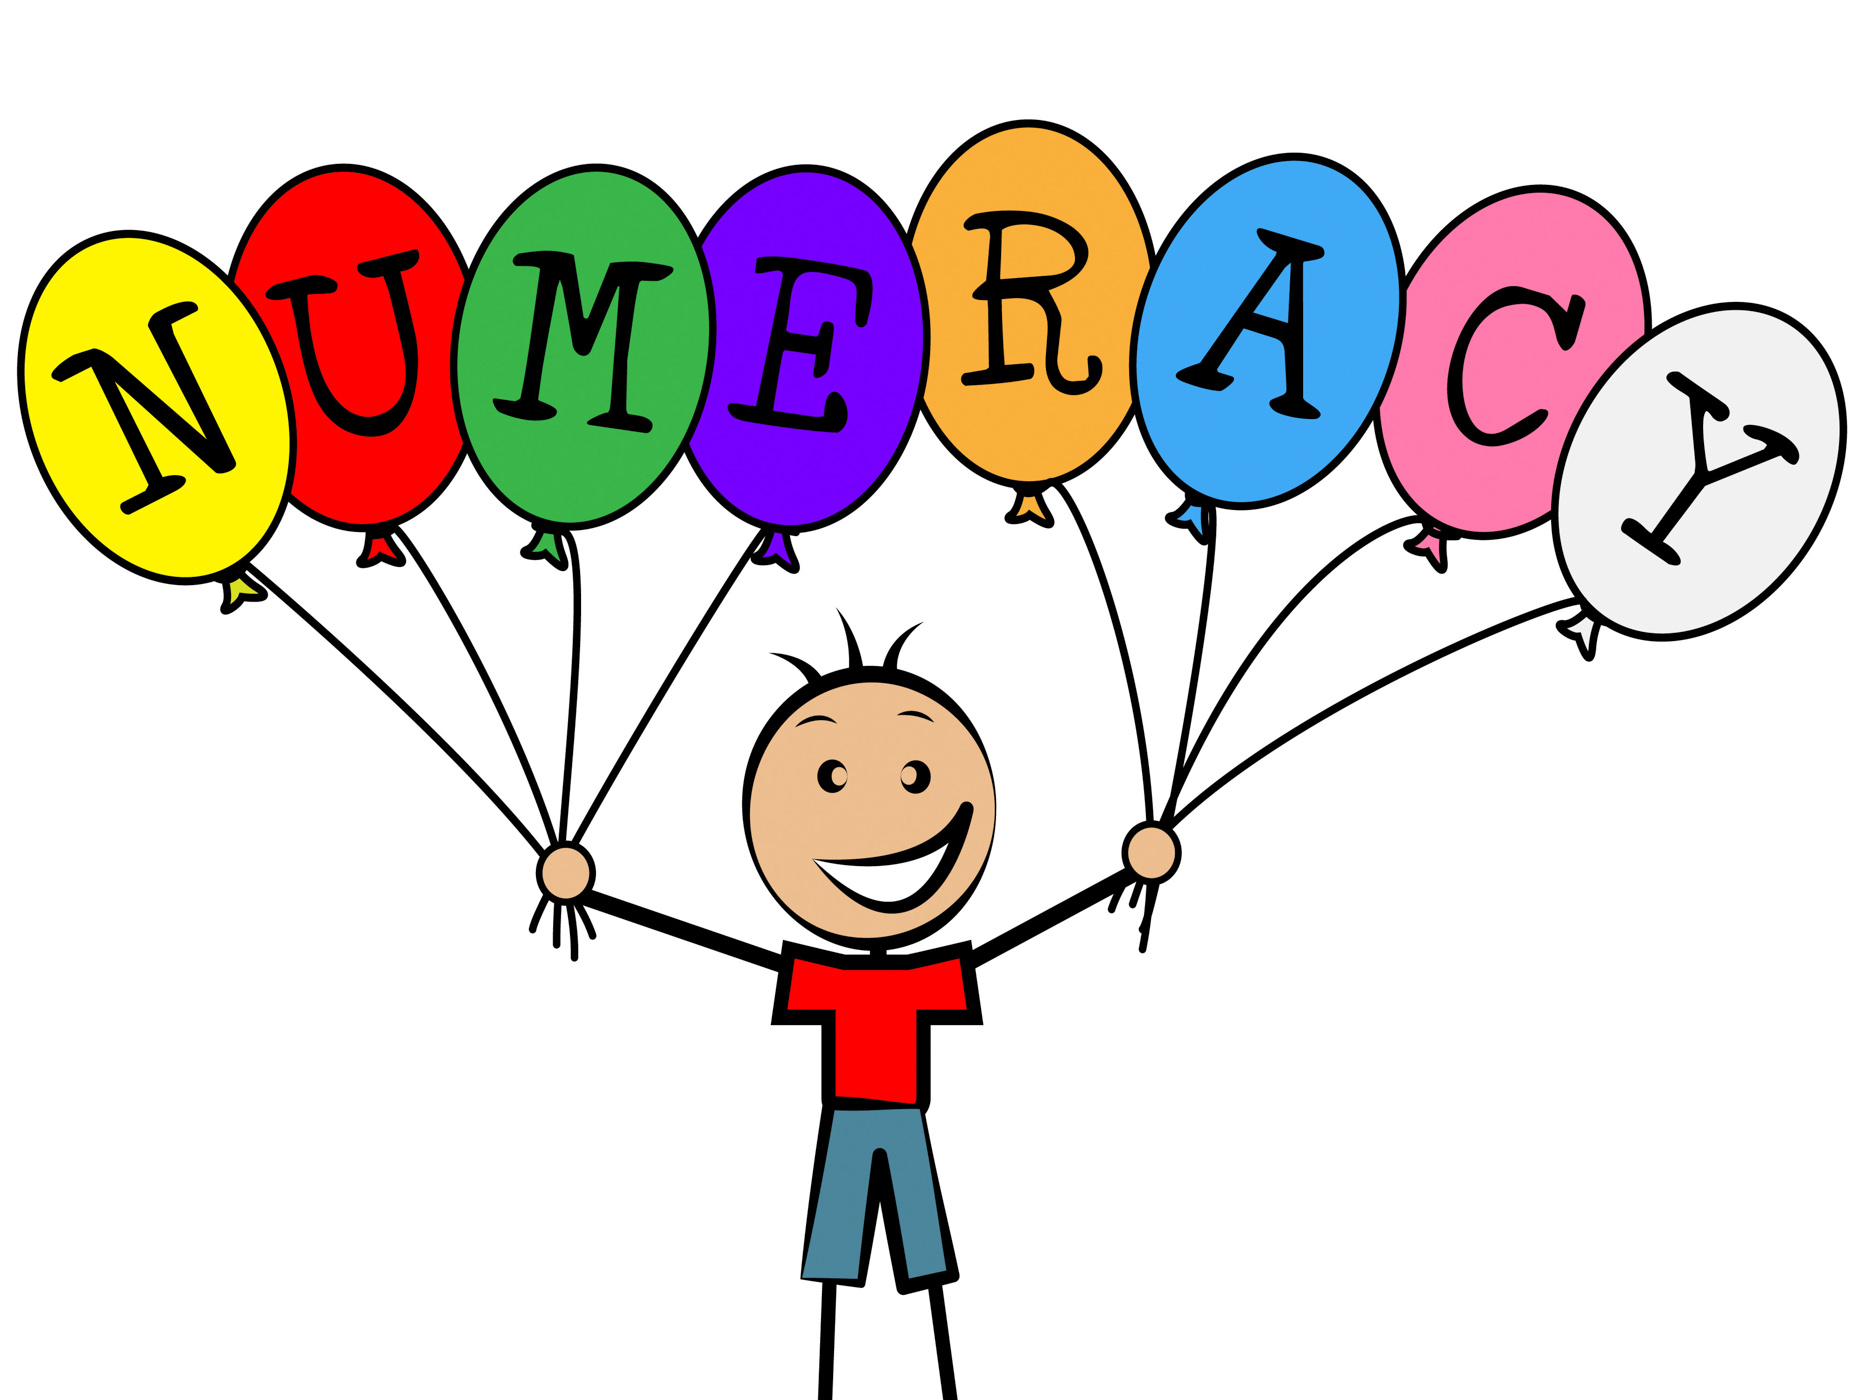 Numeracy Balloons Represents Youths Son And Numerical, Balloon, Number, Youth, Youngsters, HQ Photo